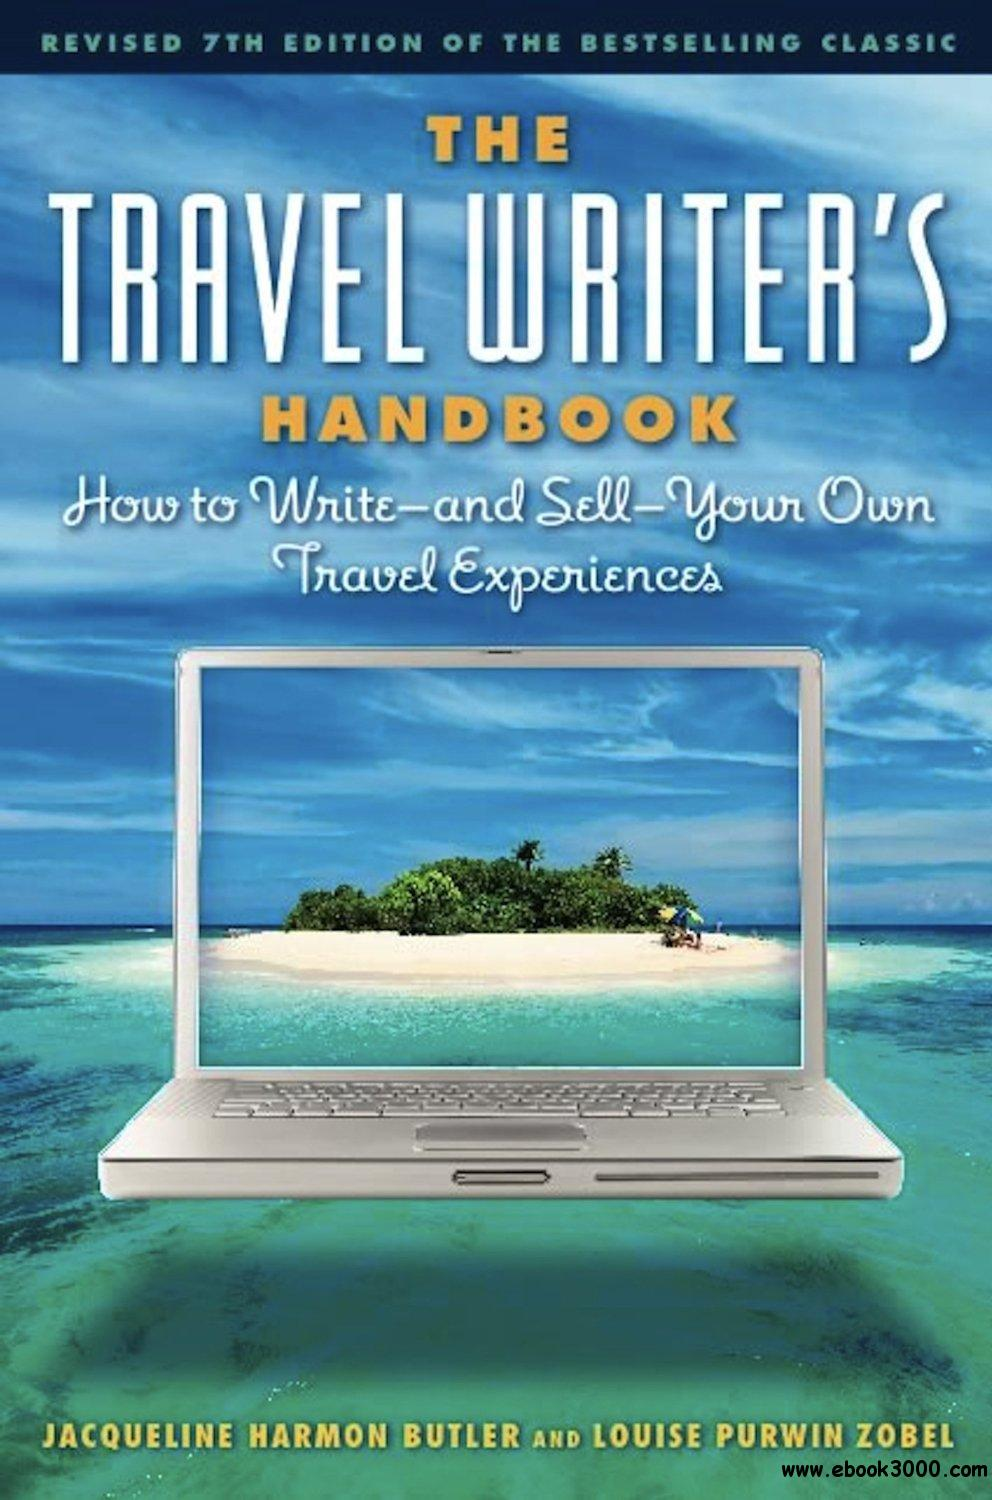 The Travel Writer's Handbook: How to Write - and Sell - Your Own Travel Experiences, Seventh Edition free download